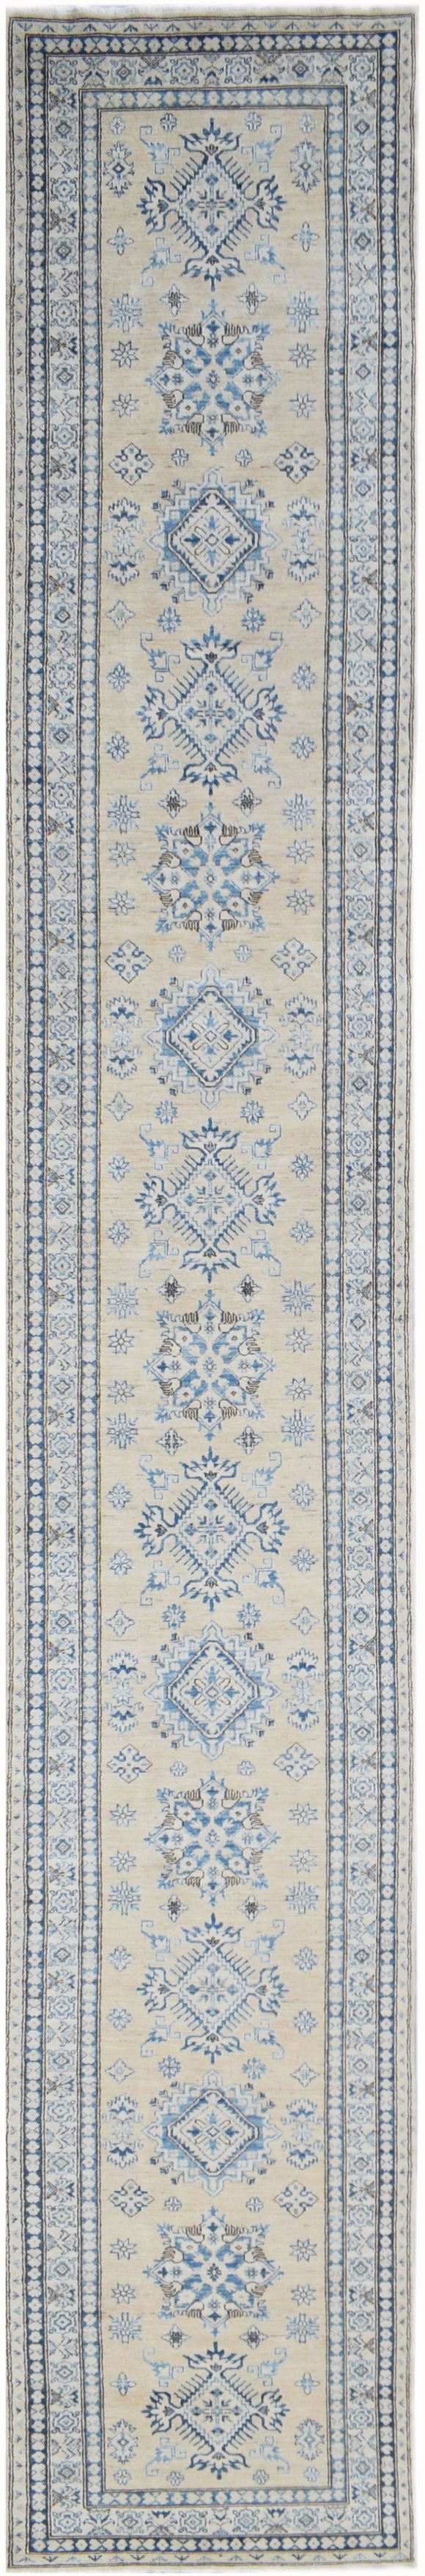 Handmade Super Sultan Collection Hallway Runner | 608 x 92 cm | 19'11